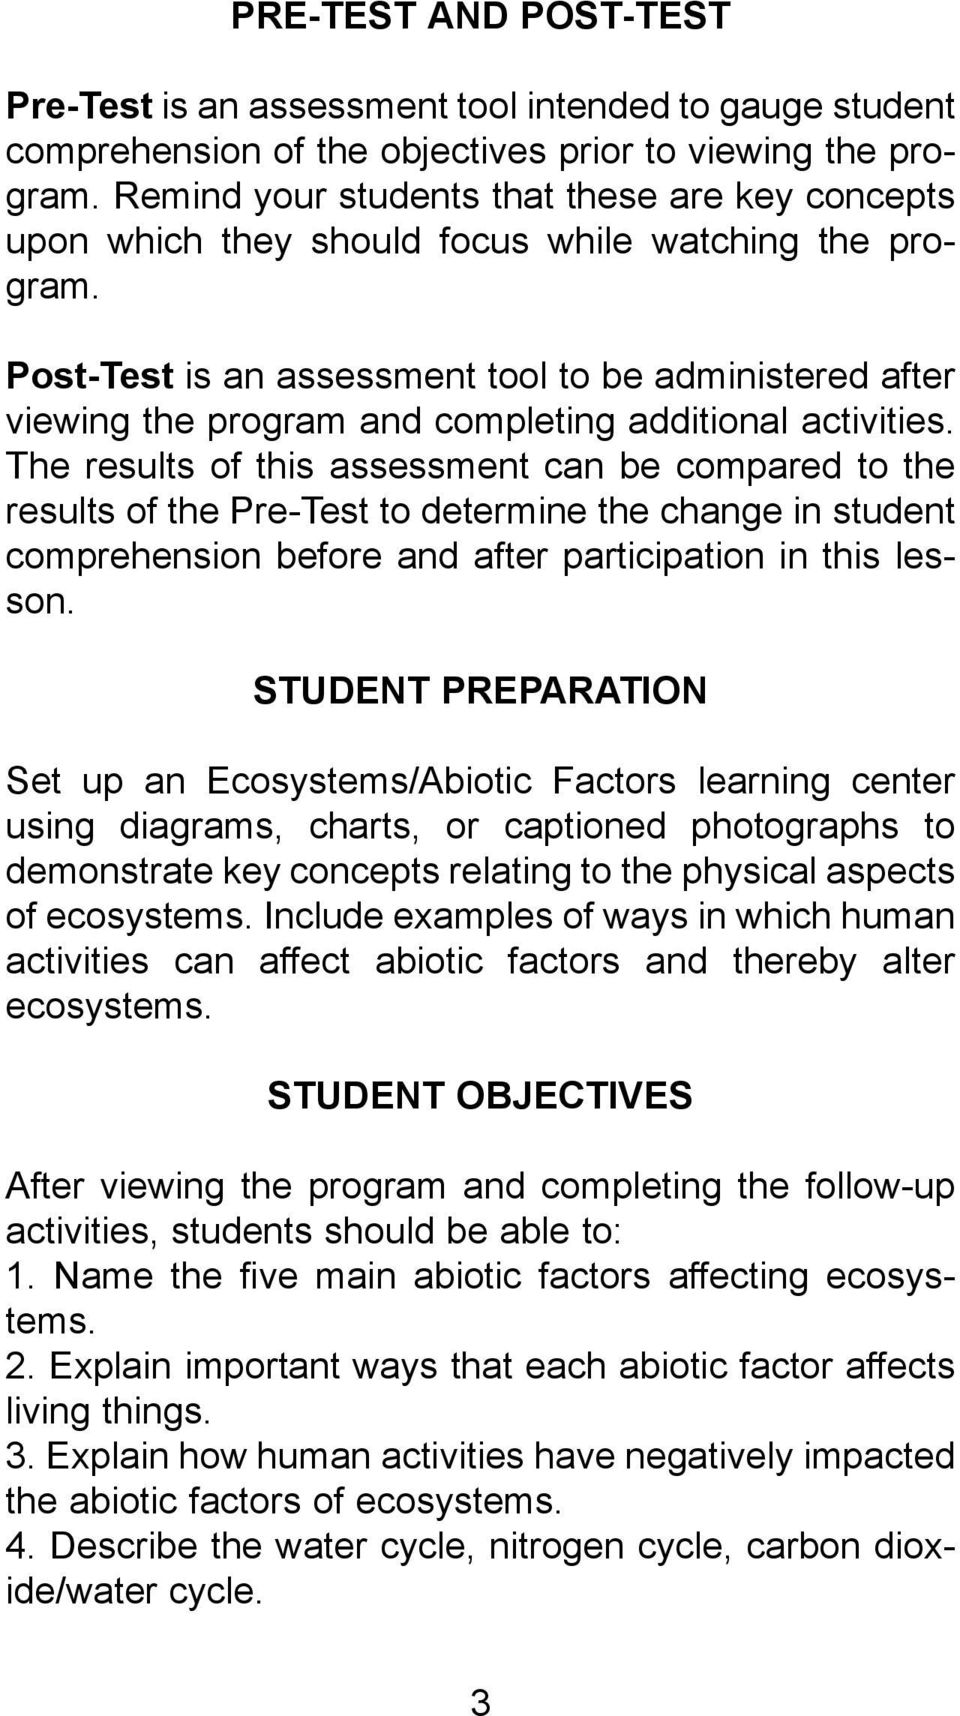 worksheet Section 4 2 What Shapes An Ecosystem Worksheet Answers ecosystems the role of abiotic factors from series biology post test is an assessment tool to be administered after viewing program and completing